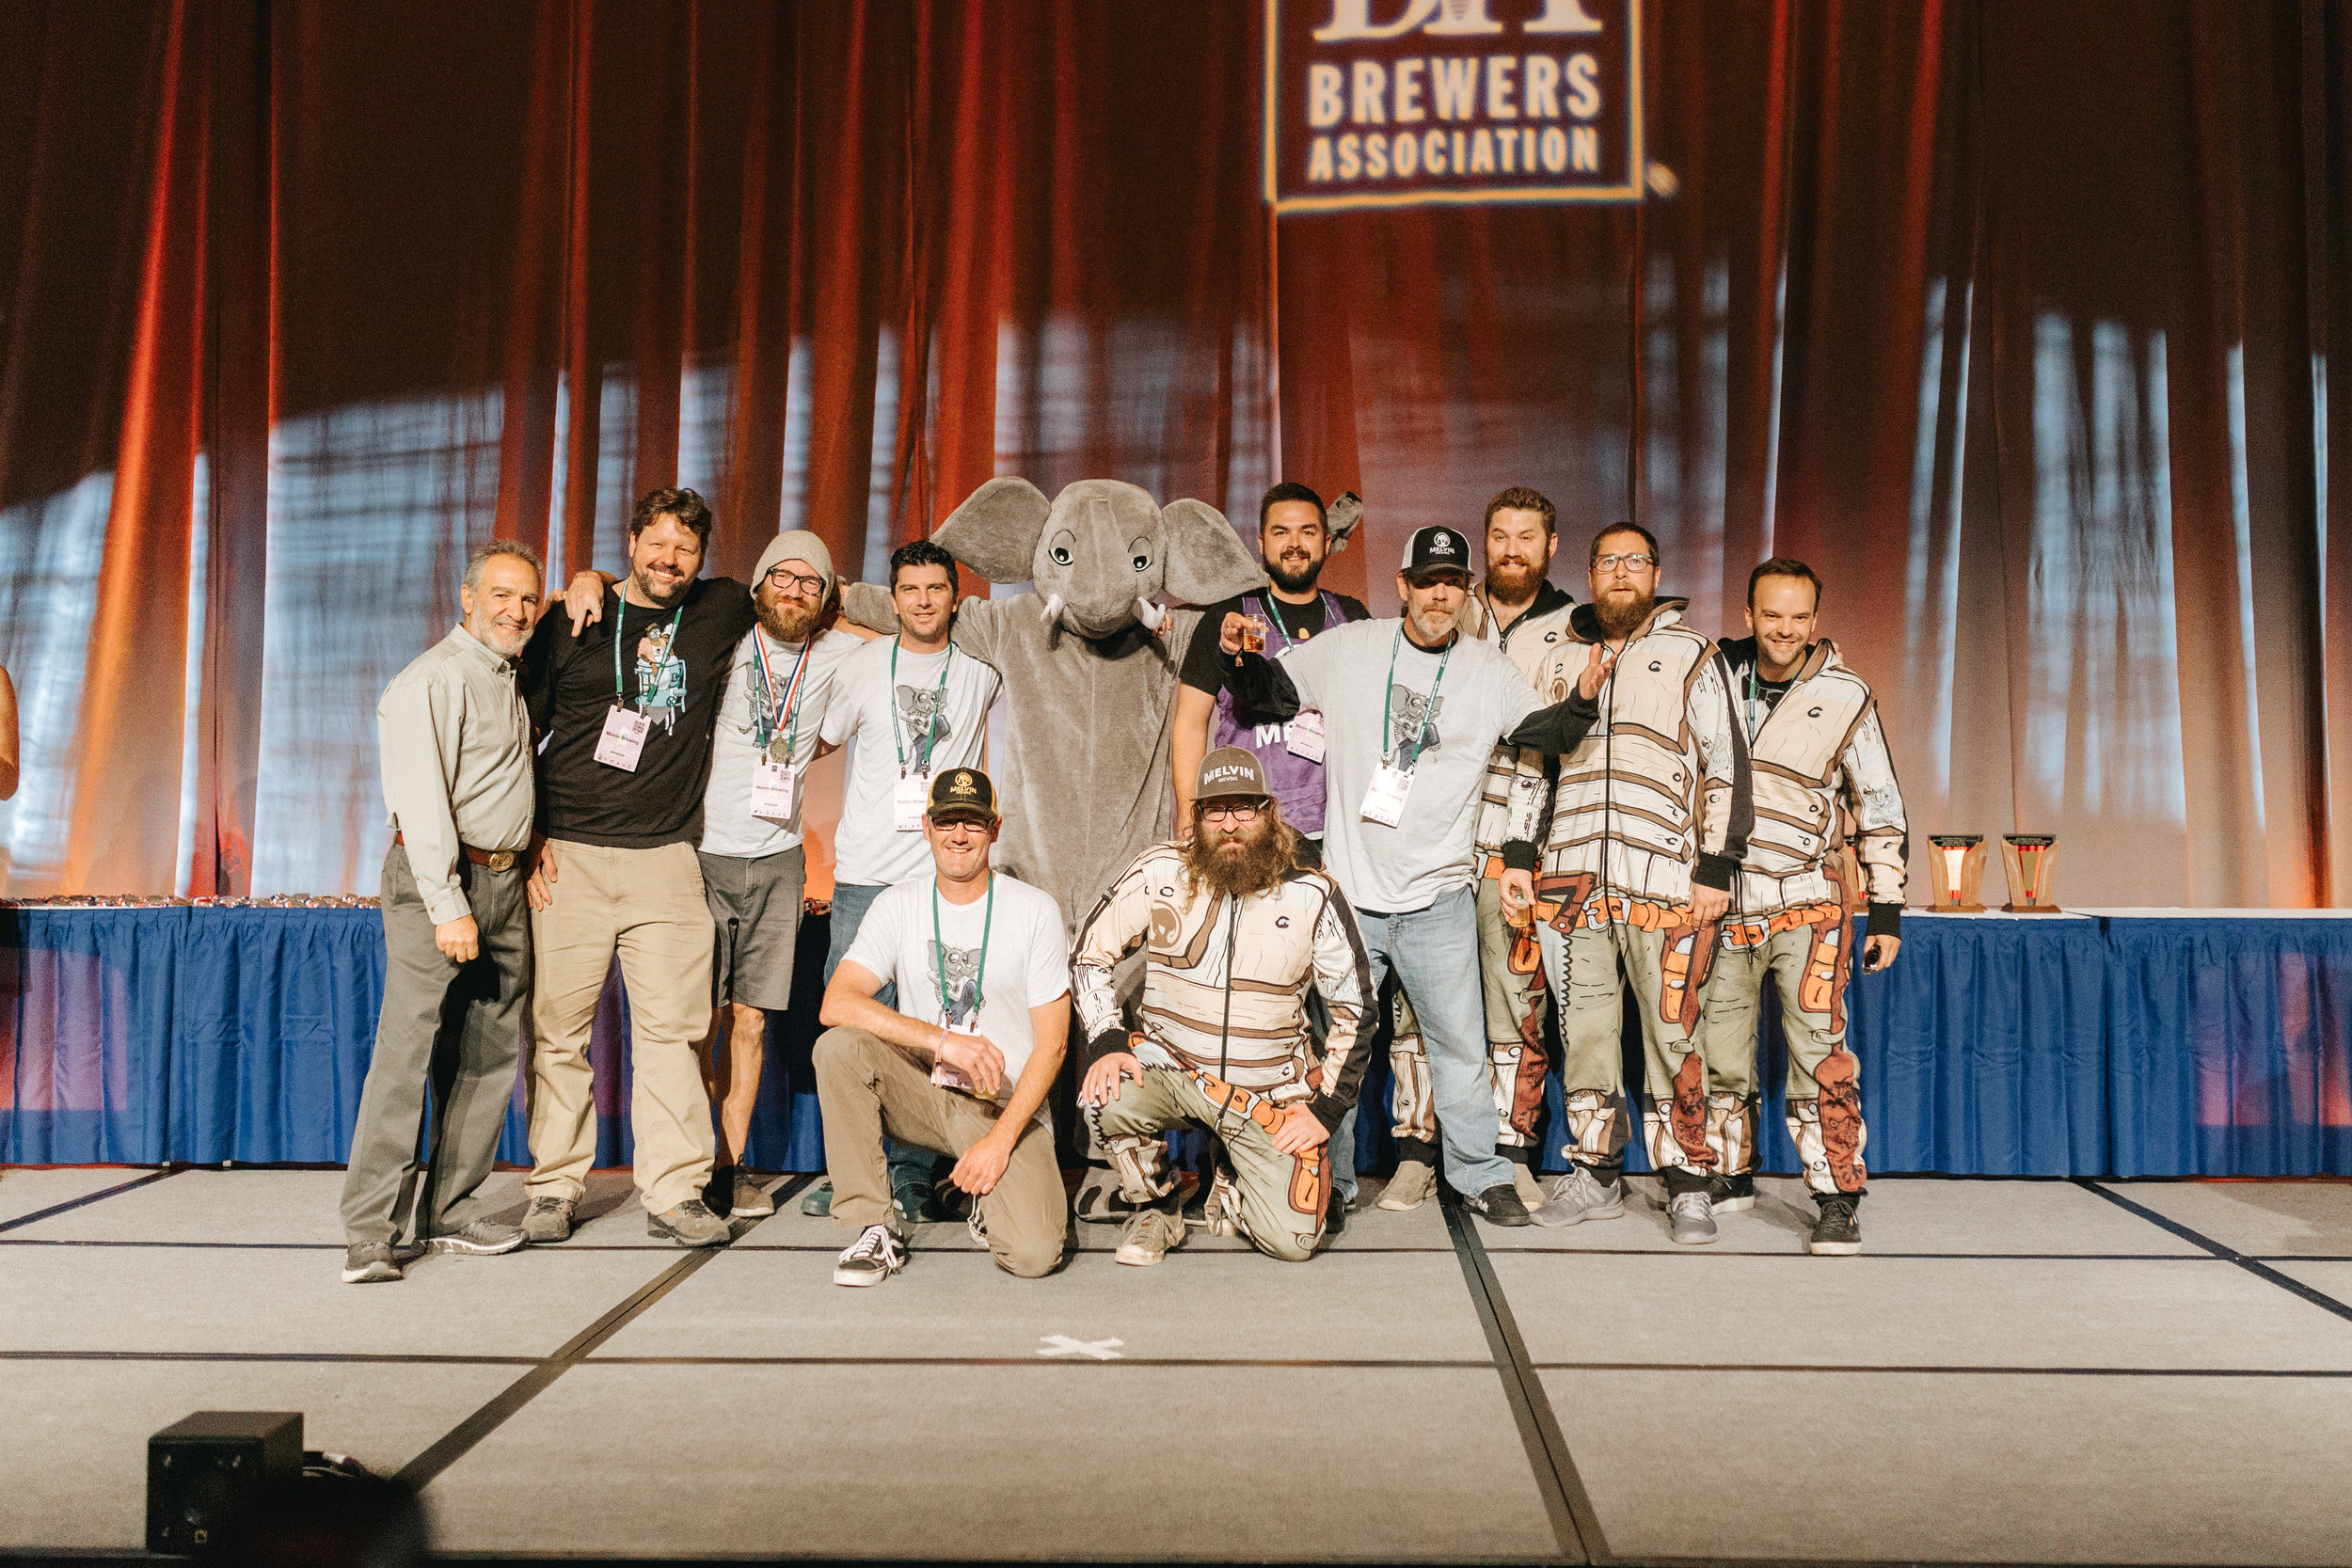 Melvin takes the stage at GABF, collecting the 2017